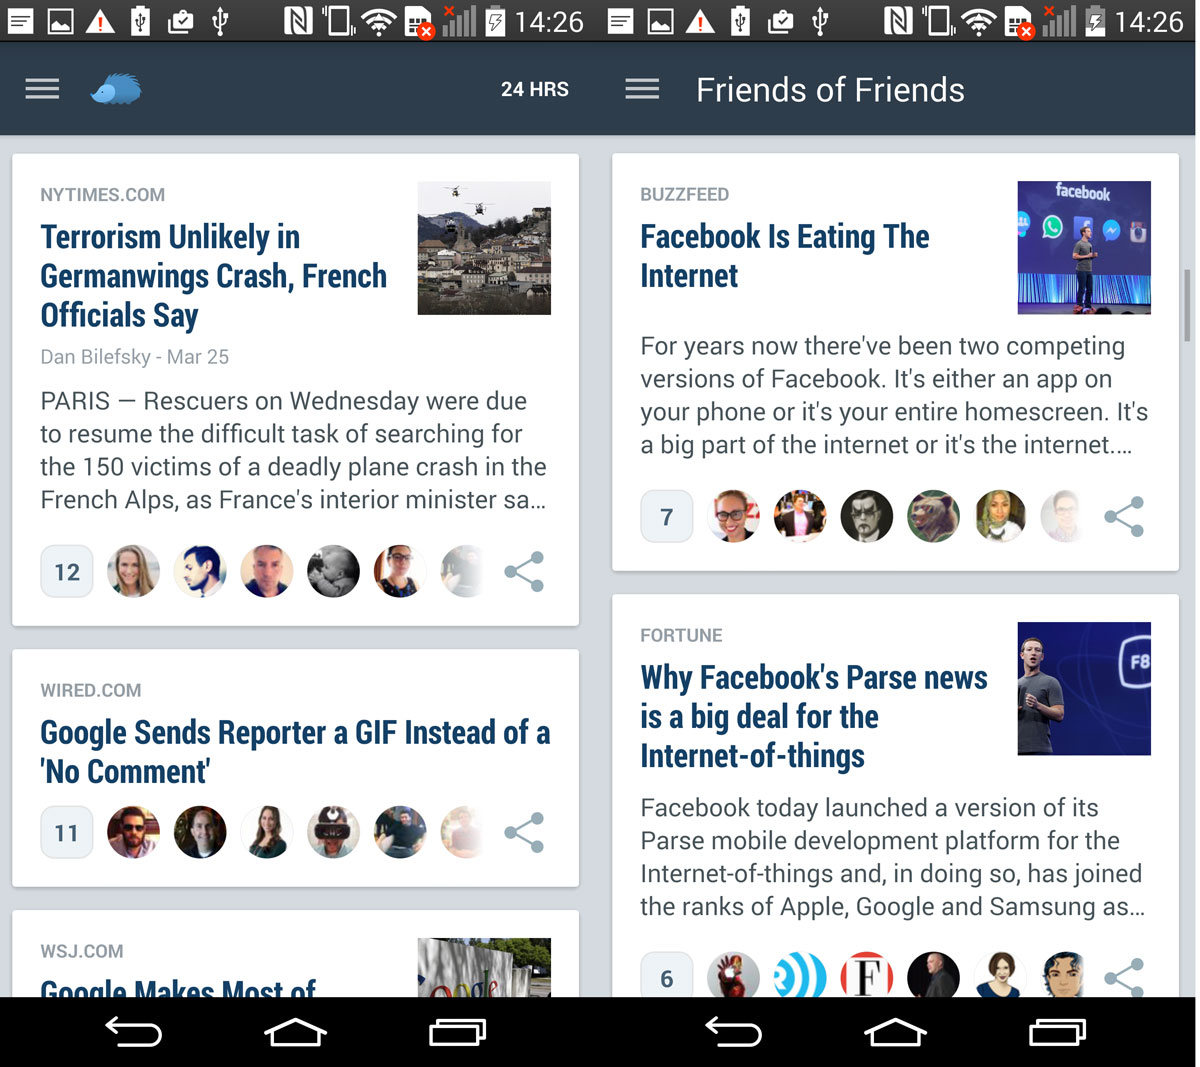 Nuzzel curates news shared by your Facebook and Twitter contacts